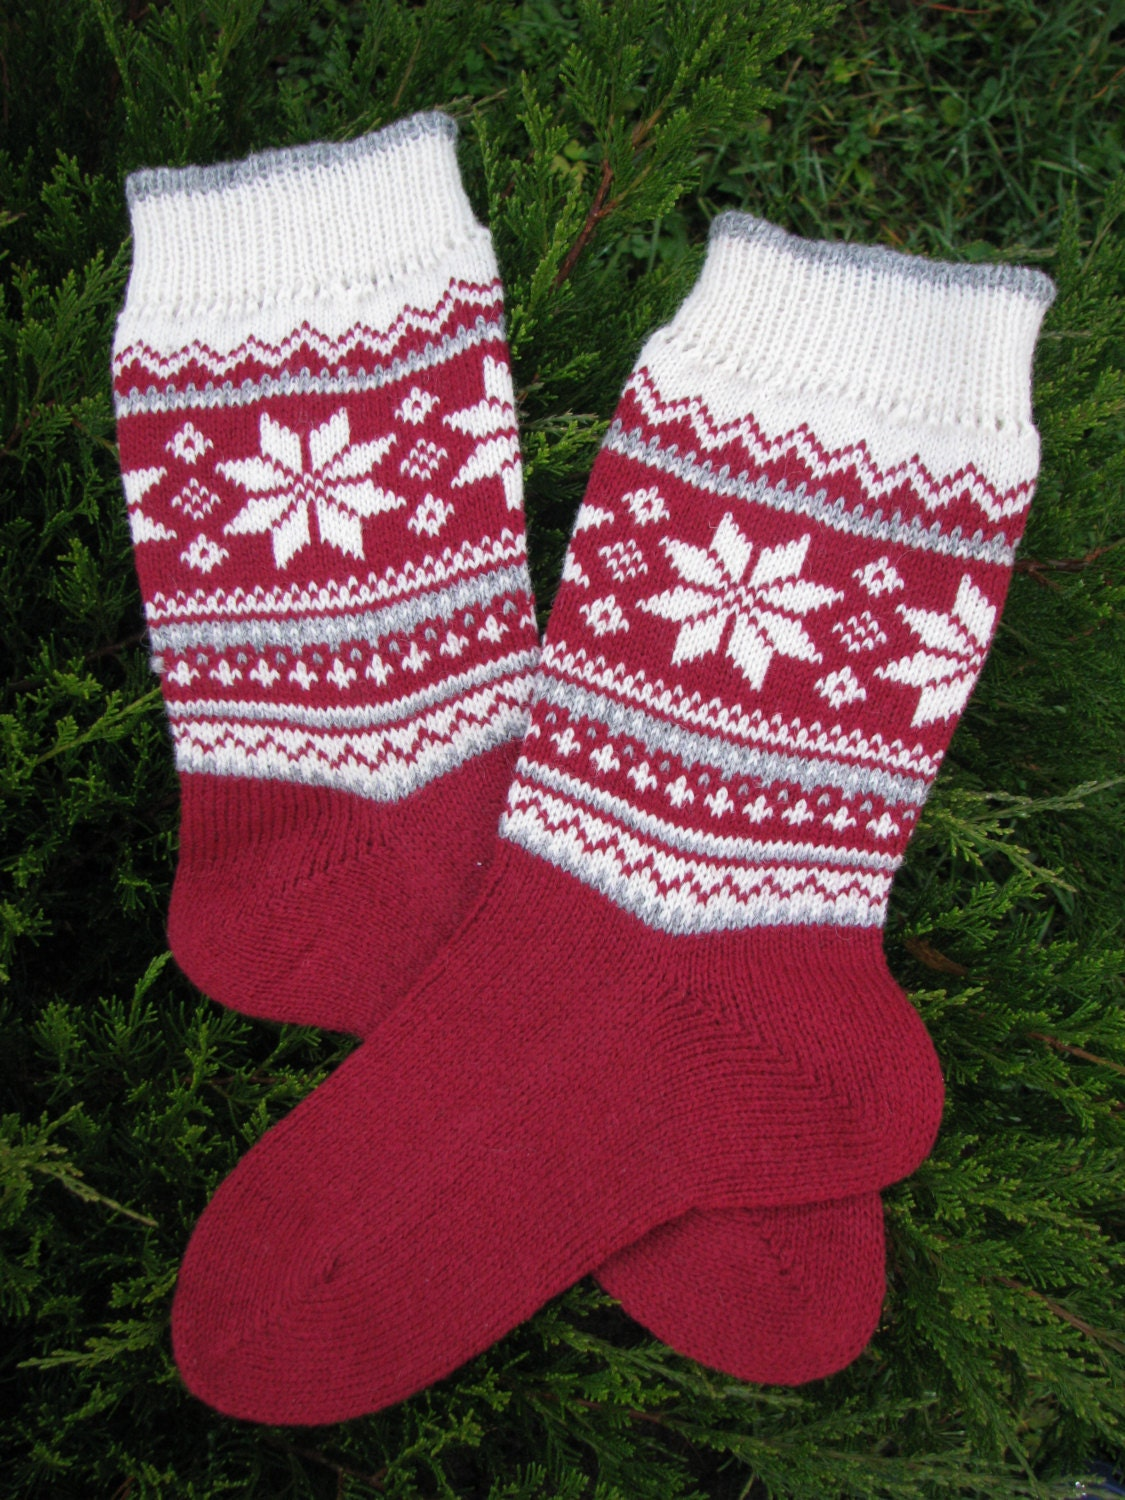 Knitting Pattern Wool Socks : knit socks wool socks knitted socks Scandinavian pattern